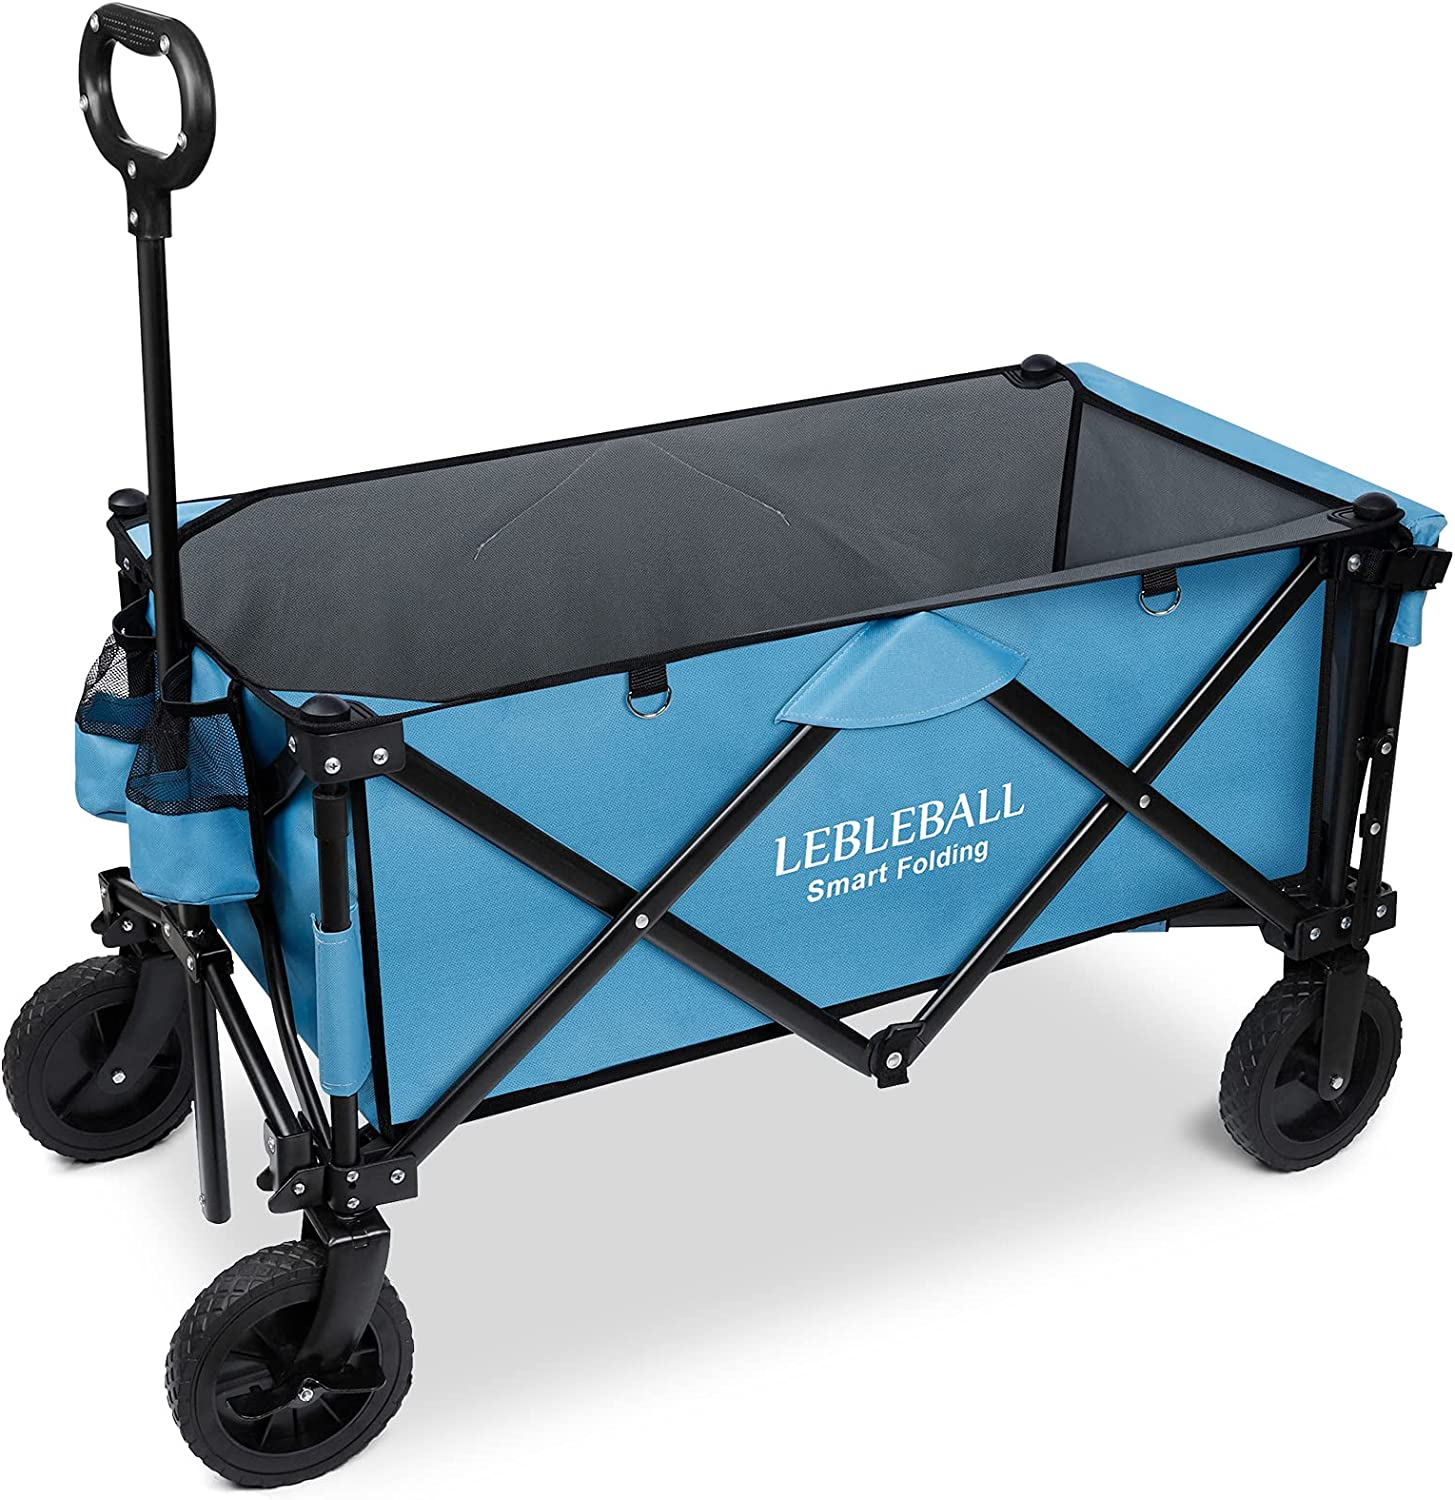 LEBLEBALL Outdoor Beach Collapsible Folding Portable Heavy Duty Large Capacity Utility Wagon All Terrain Wagon Cart with 2 Cup Holders and Big Wheels Brake for Beach, Camping, Garden-Blue